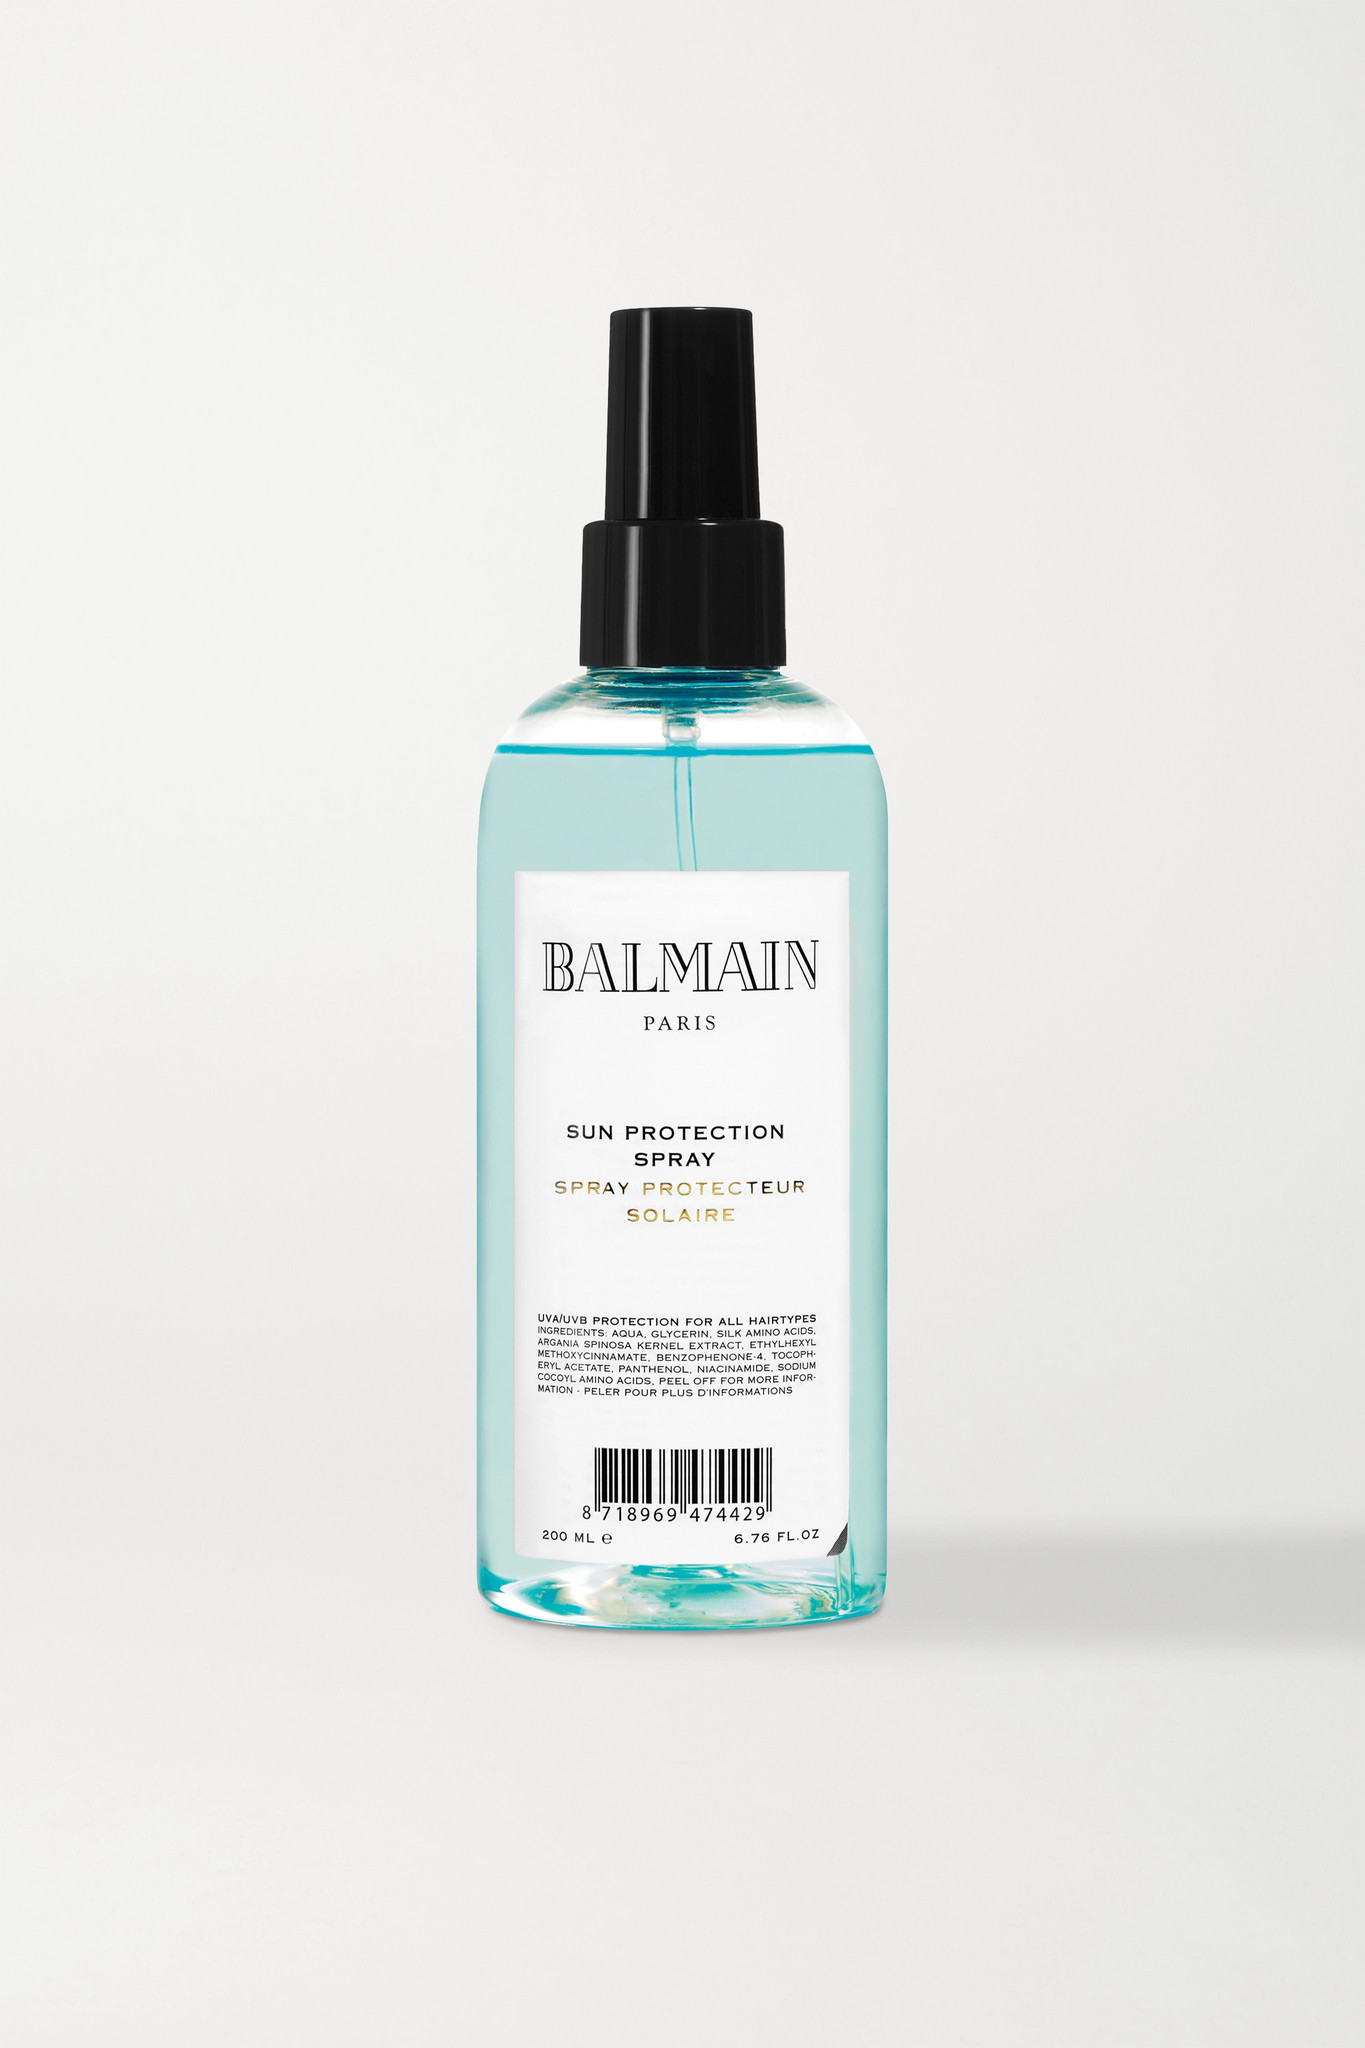 BALMAIN PARIS HAIR COUTURE - Sun Protection Spray, 200ml - one size